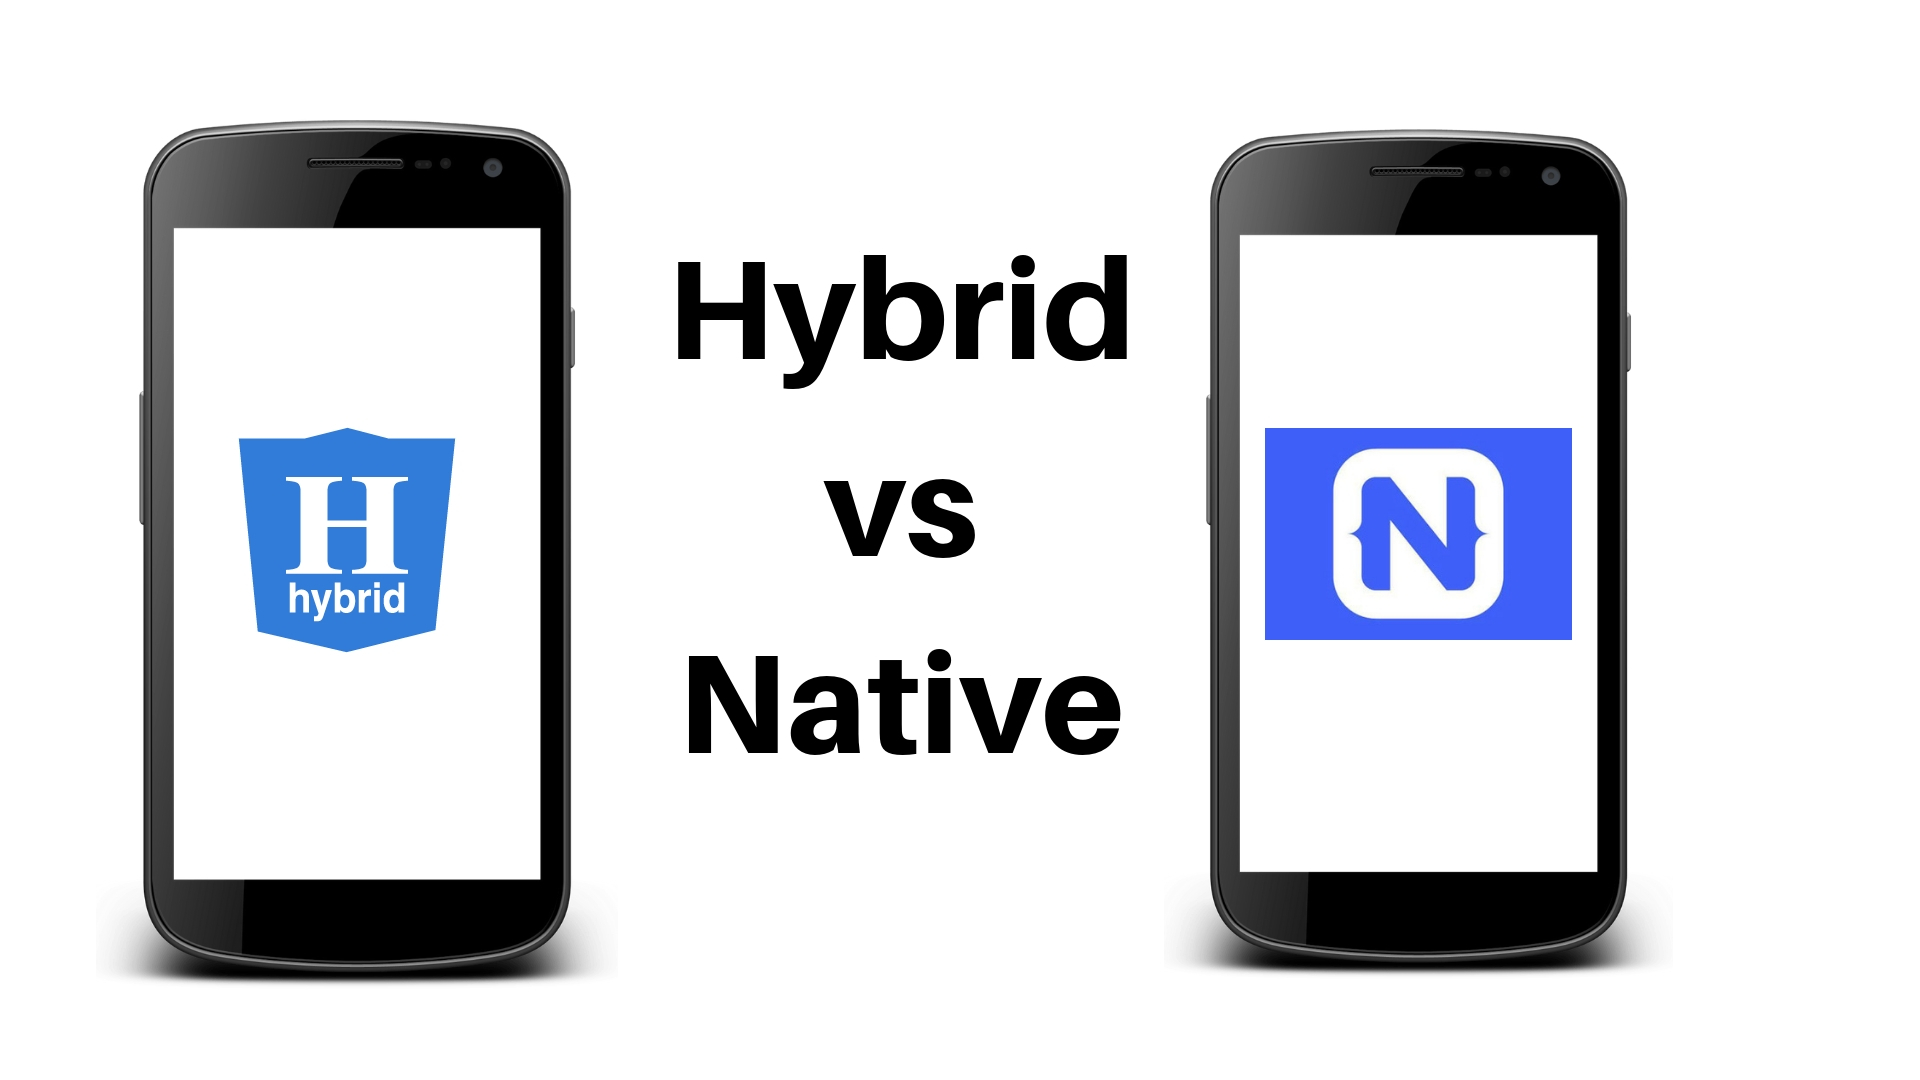 Hybrid Apps Don't Perform As Well As Native Apps, True or False? - Image 1